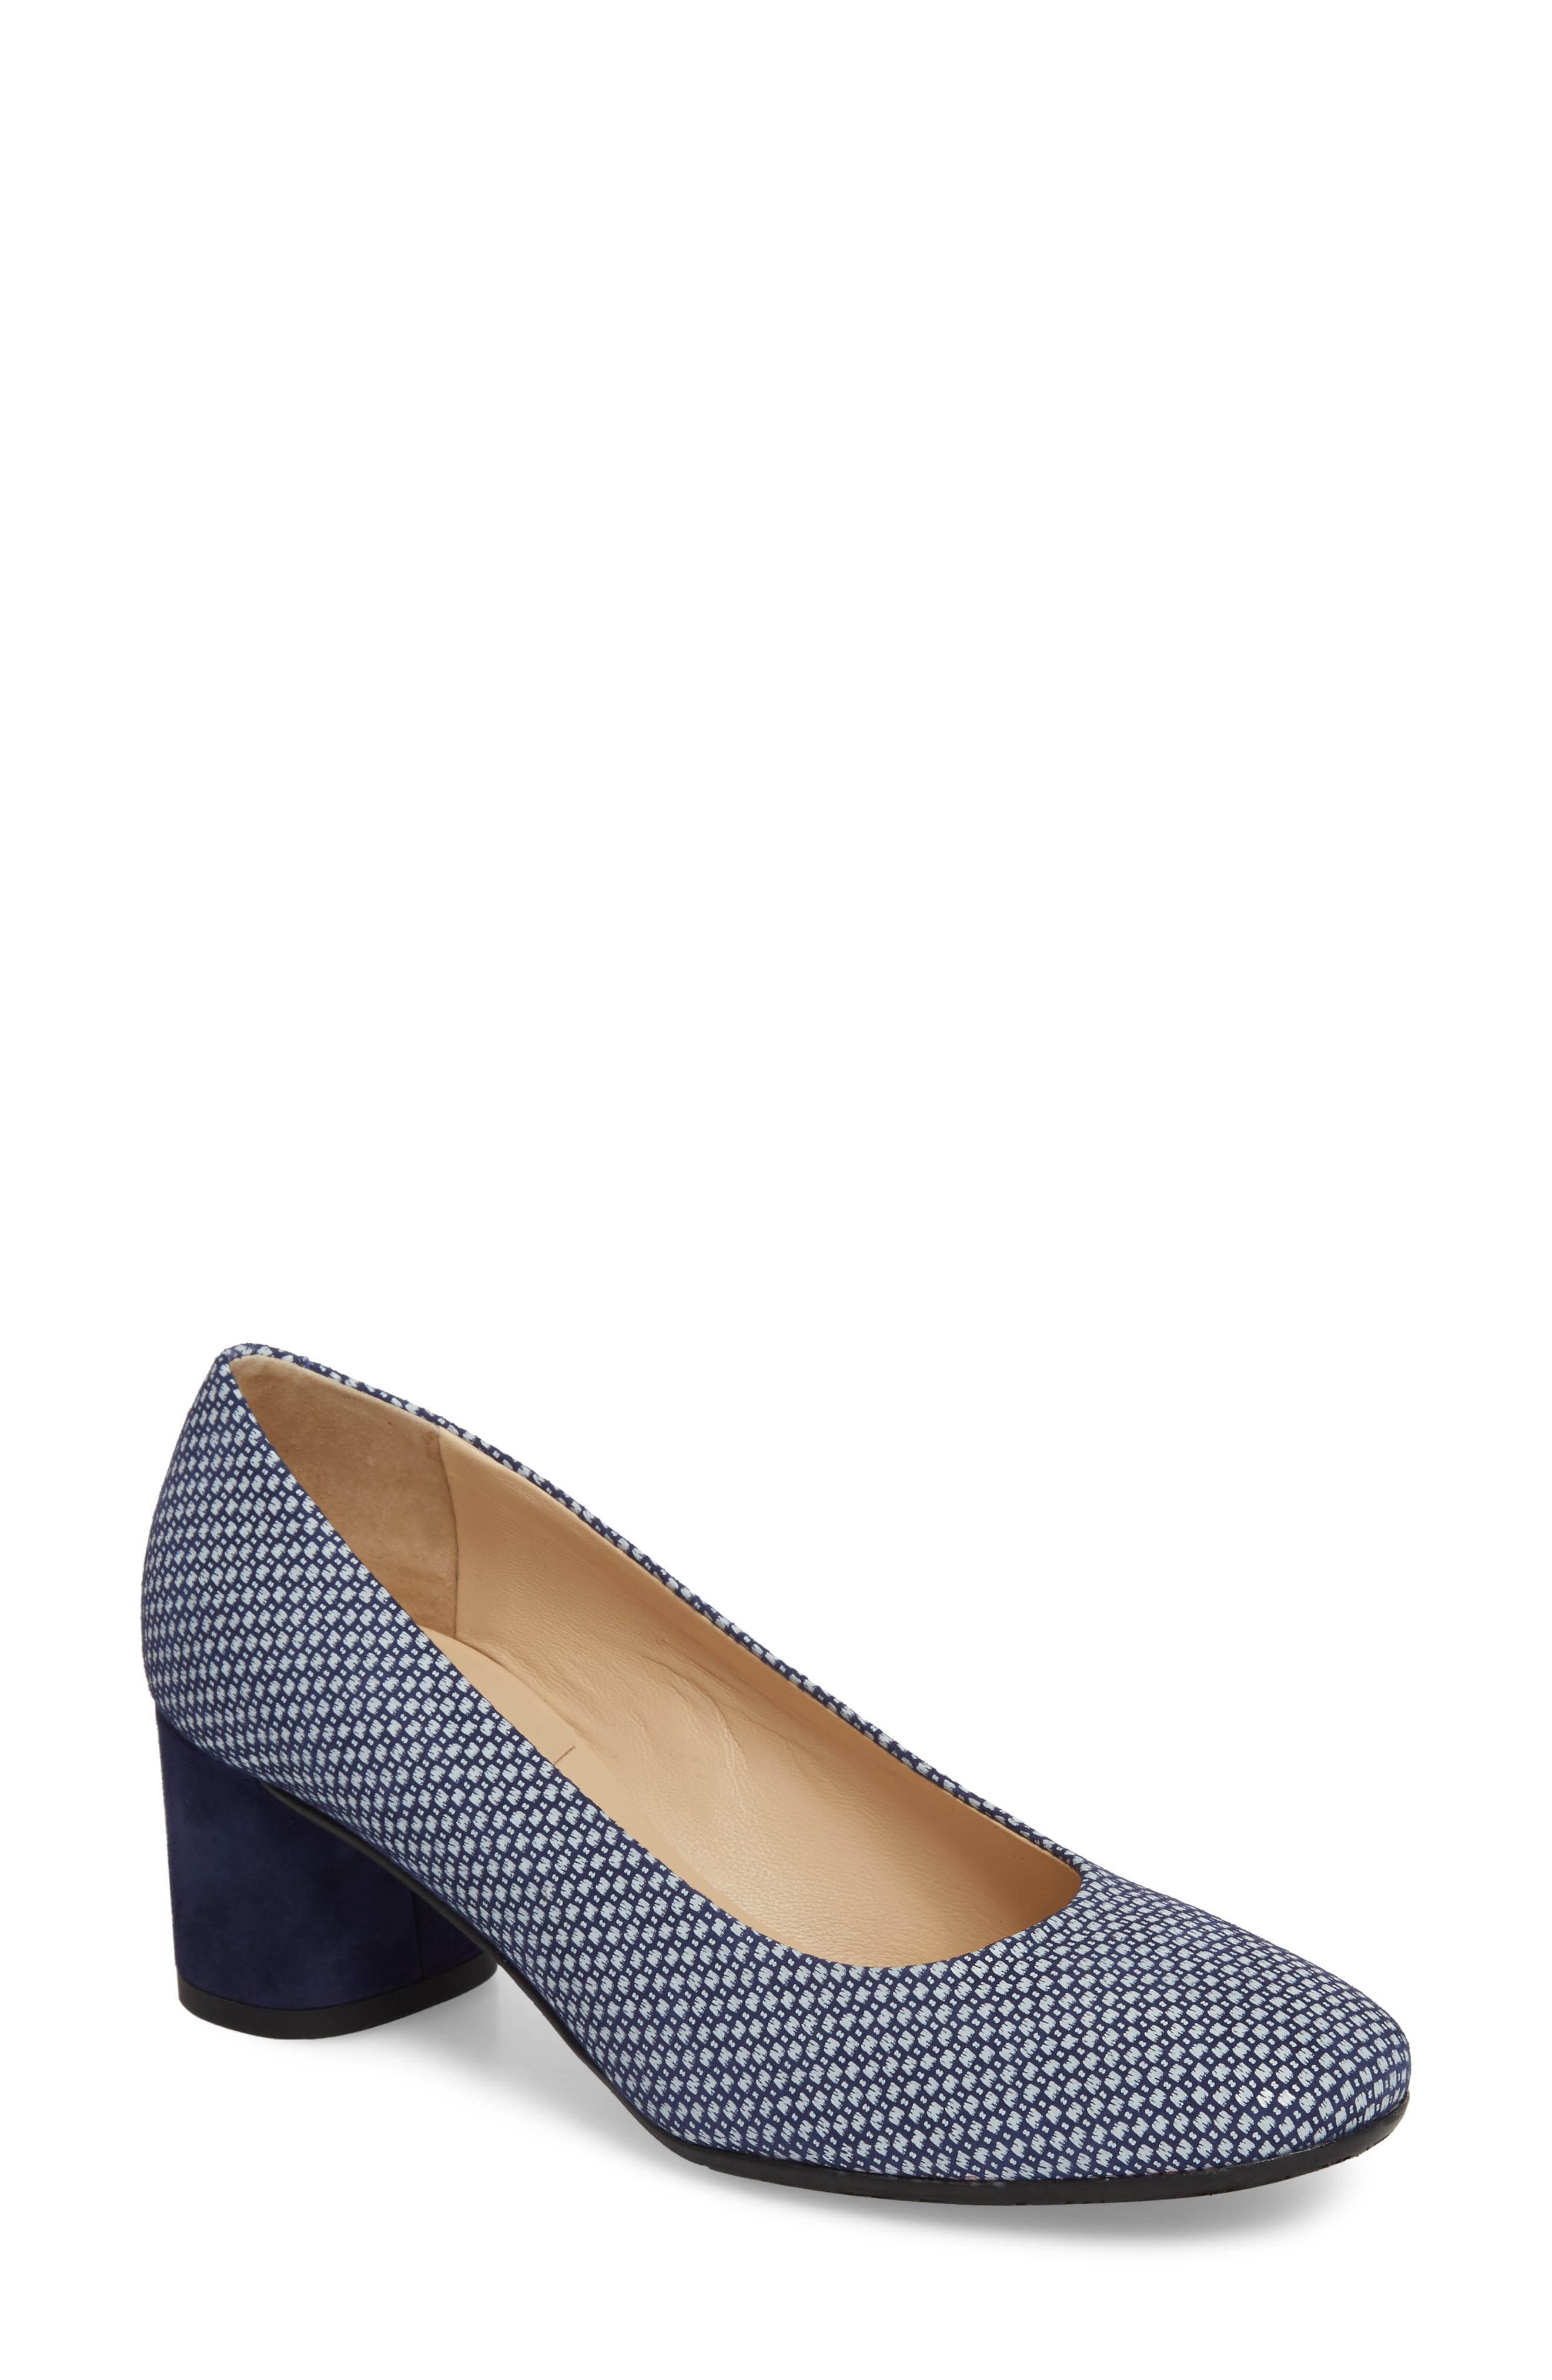 Rosso Pump,                         Main,                         color, Blue/ White Leather